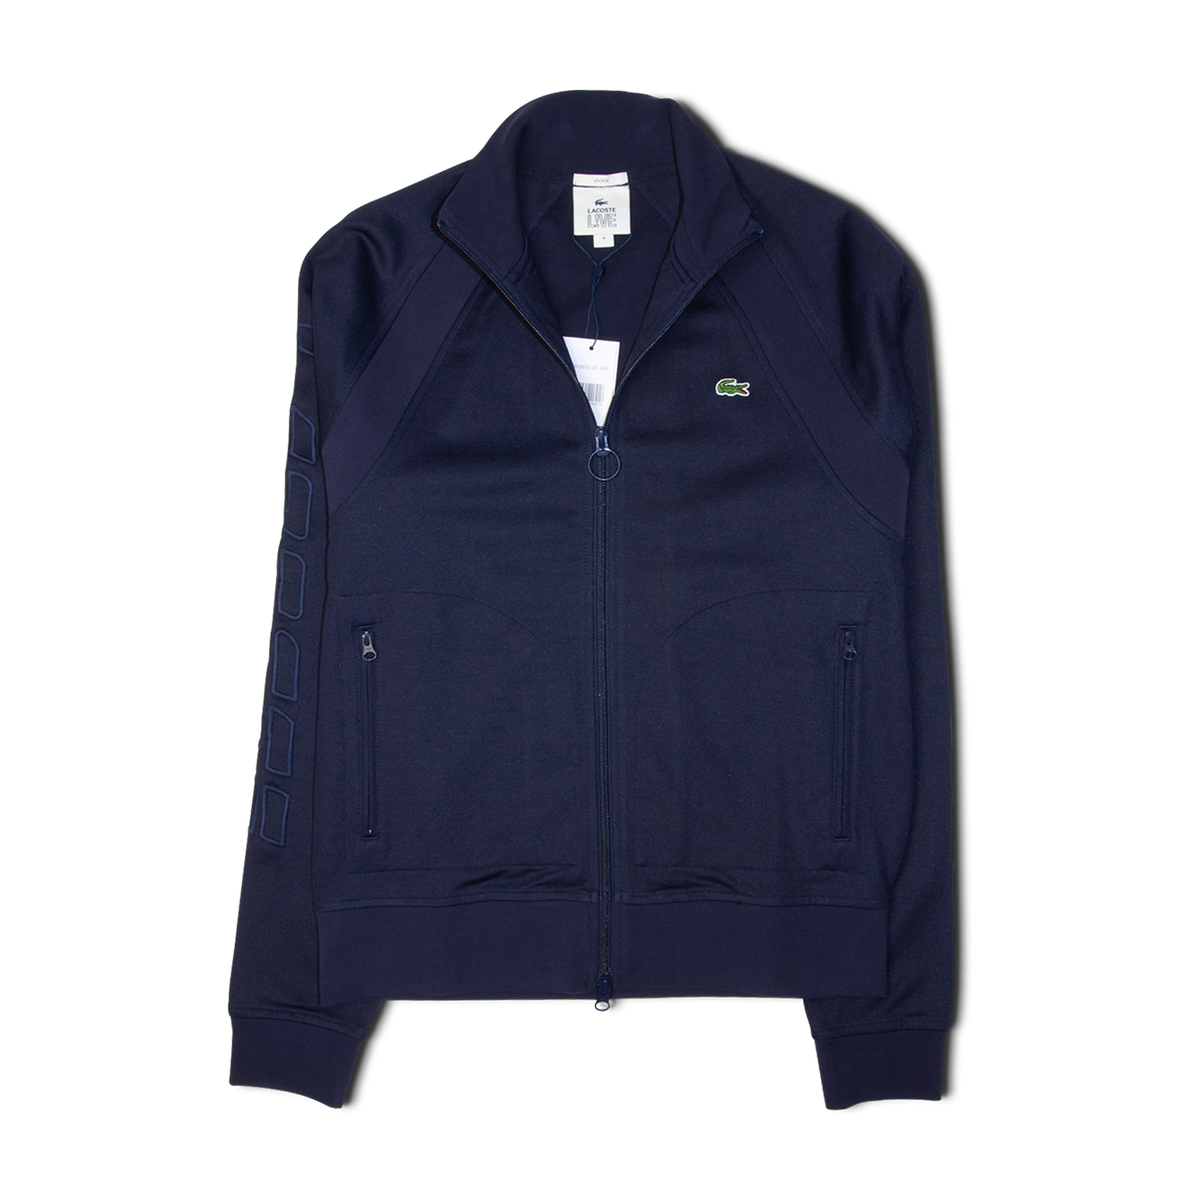 3445849ae Lacoste LIVE Graphic Embroidery Resistant Knit Zip Jacket Navy – Grants 1856